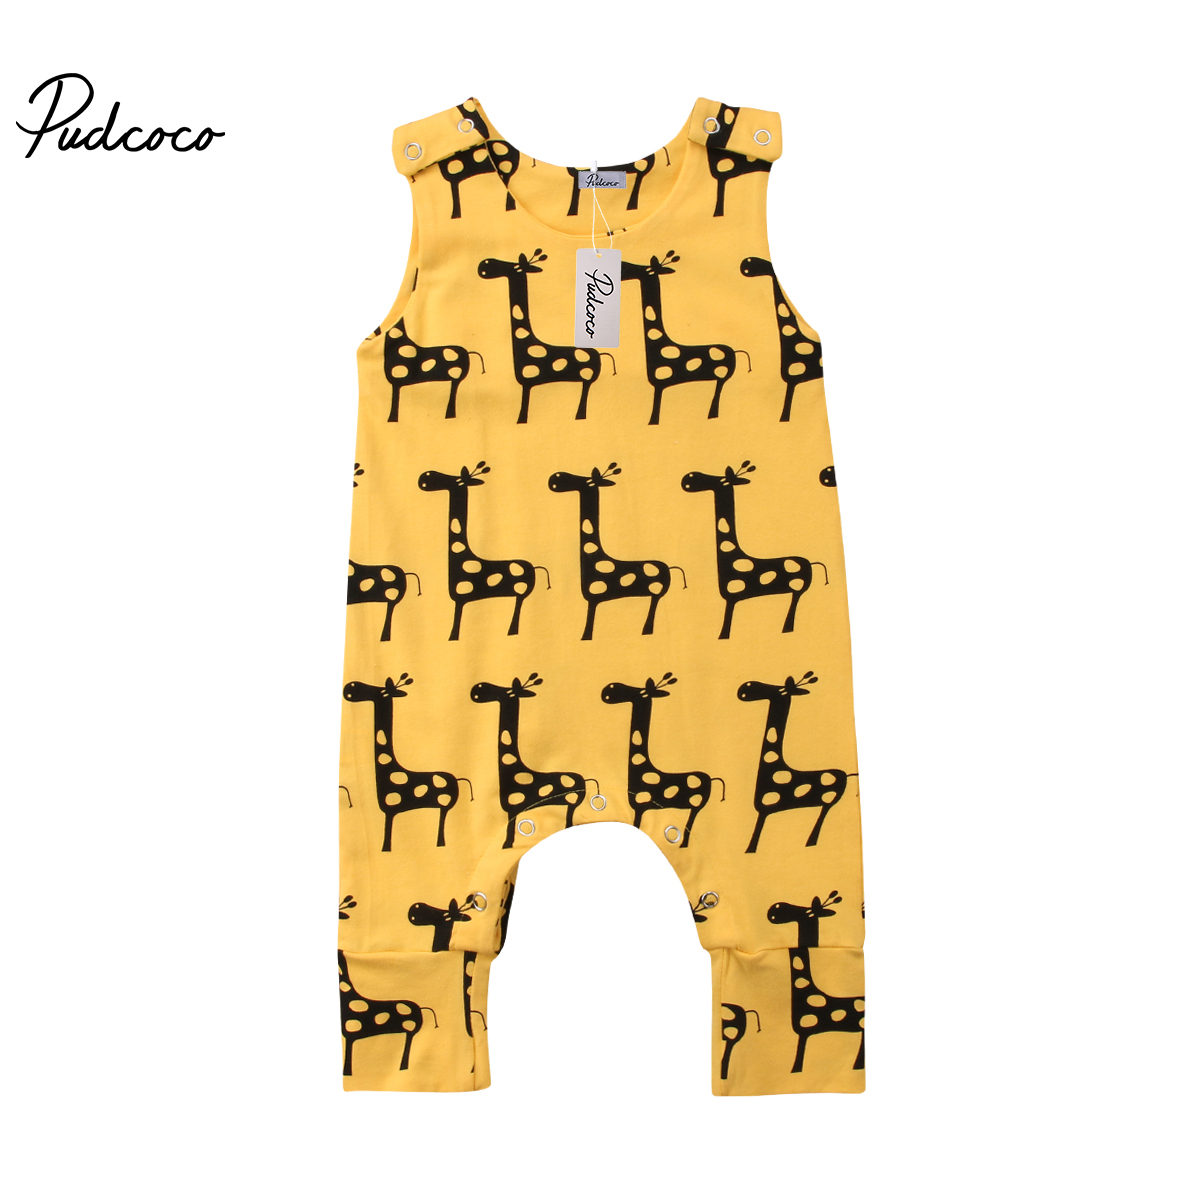 2018 Brand New 0-24M Cute Newborn Baby Boy Girl Sleeveless Cartoon Animal Cotton Romper Jumpsuit Outfits Summer Clothes